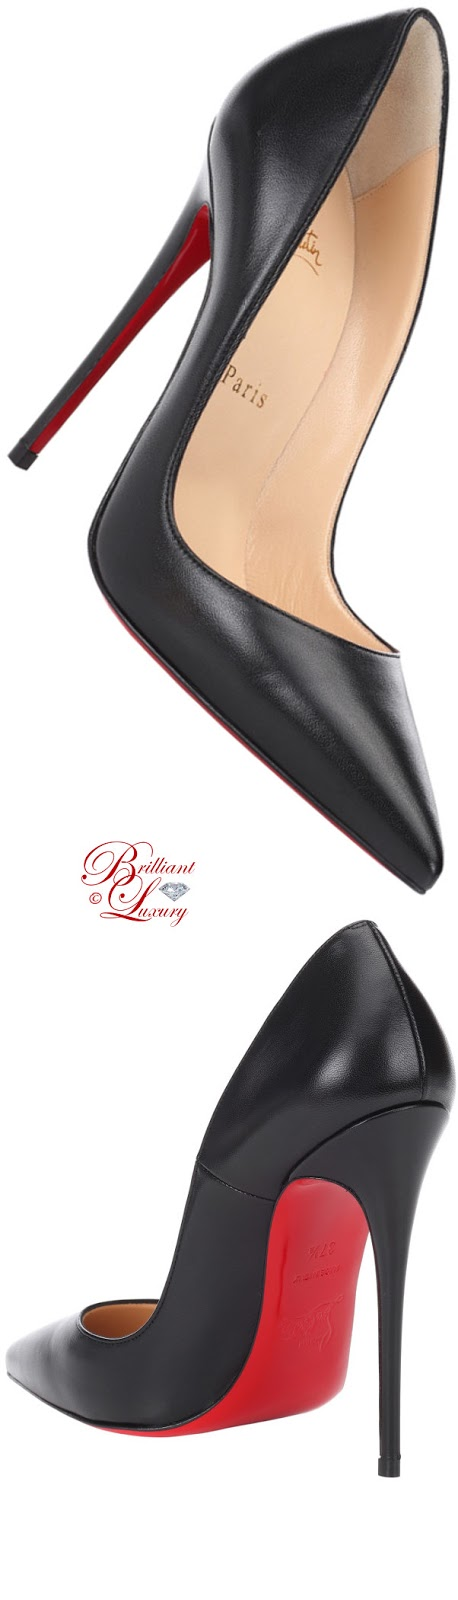 Brilliant Luxury ♦ Christian Louboutin So Kate leather pumps in black 2018